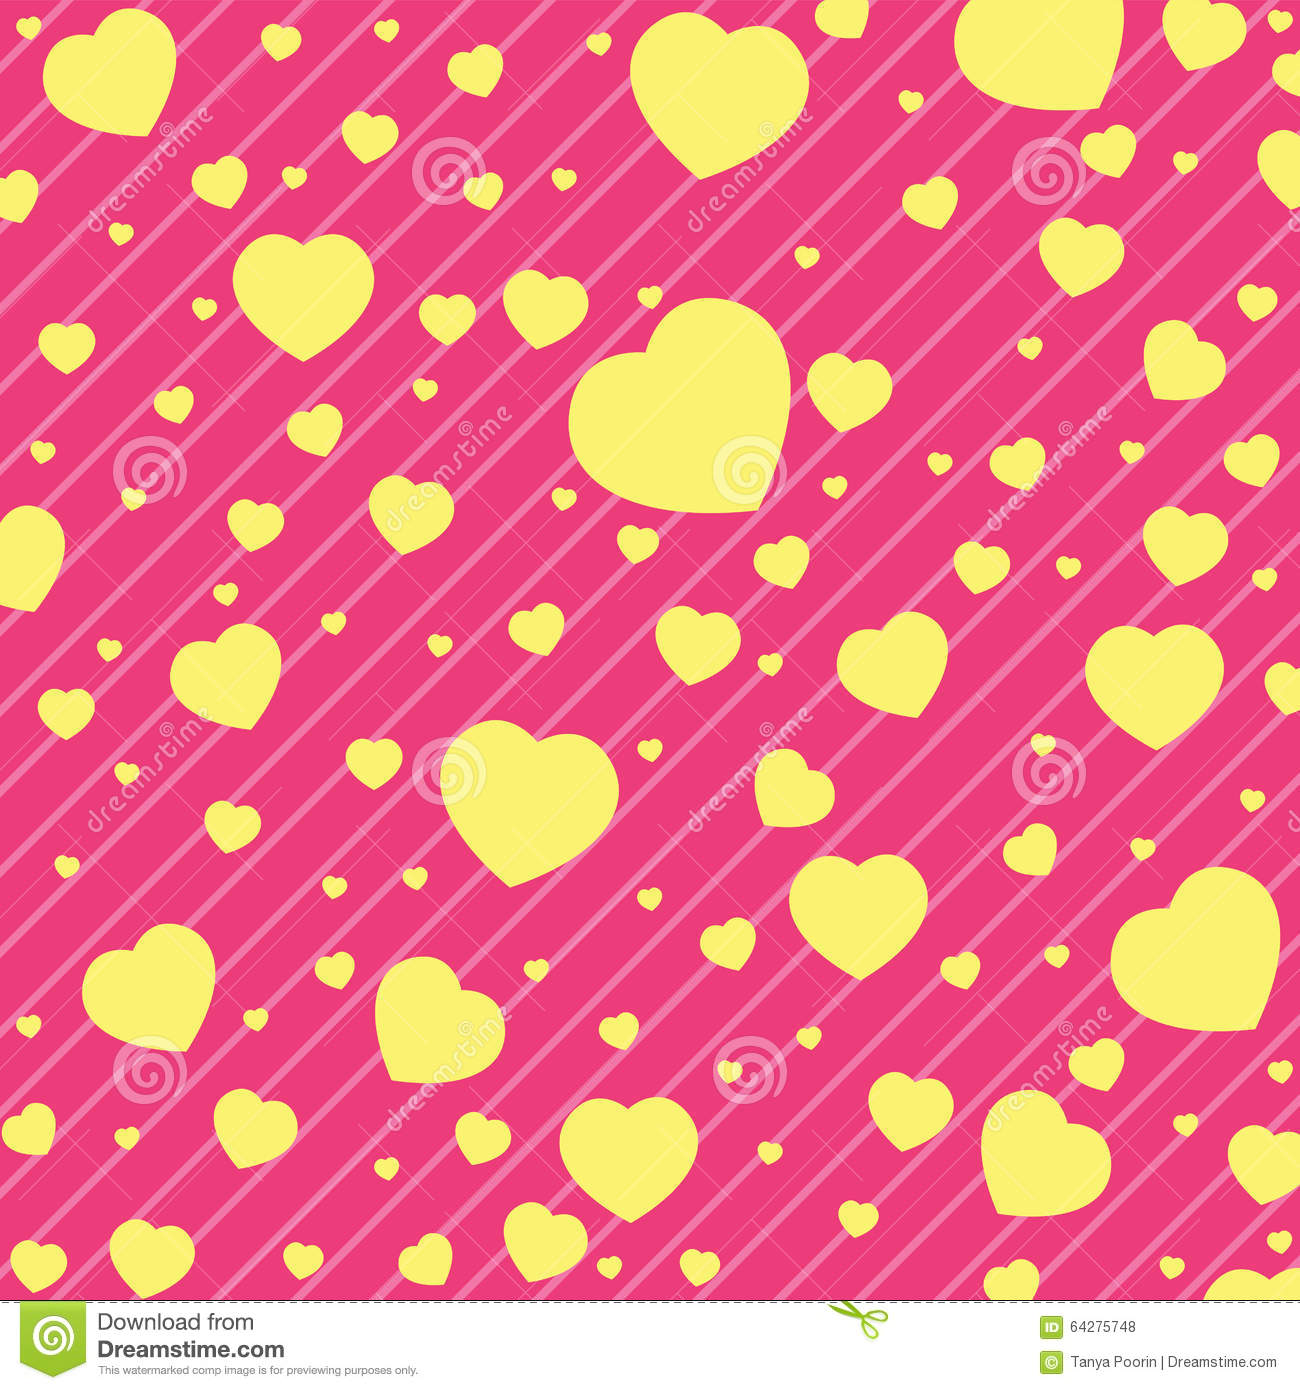 Valentine Day and yellow Heart on Pink background. Vector Valentine Day Background.